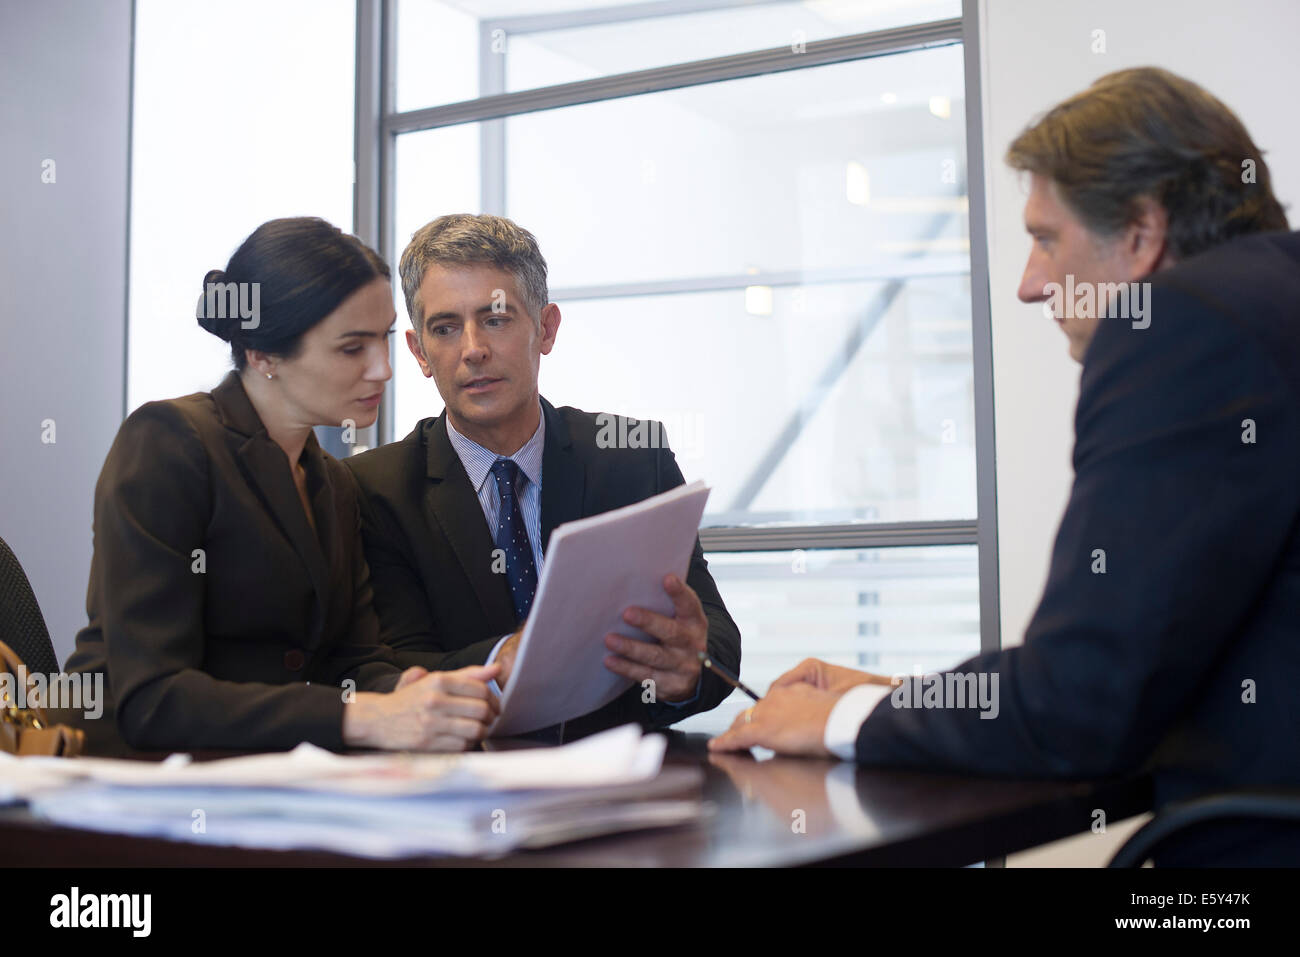 Business meeting, business associates reviewing contract - Stock Image